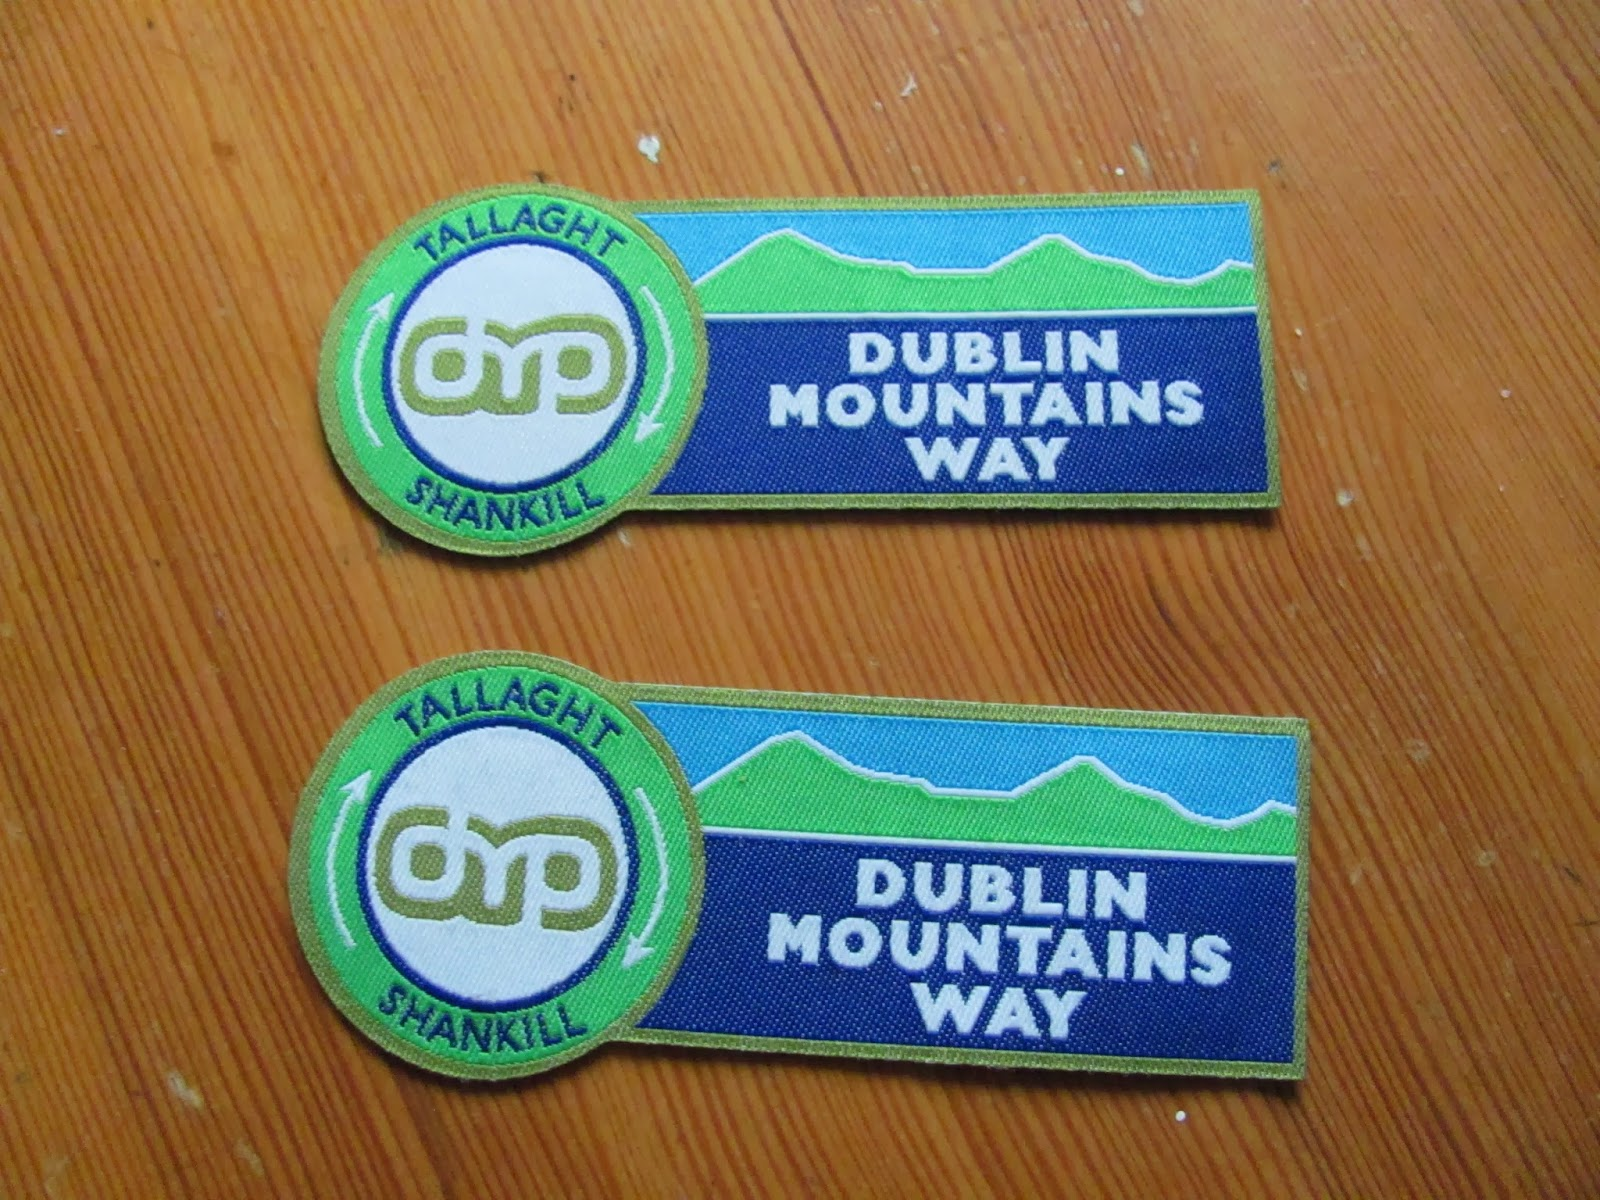 Dublin Mountains Way Official Badges on display after a hike in Co. Dublin